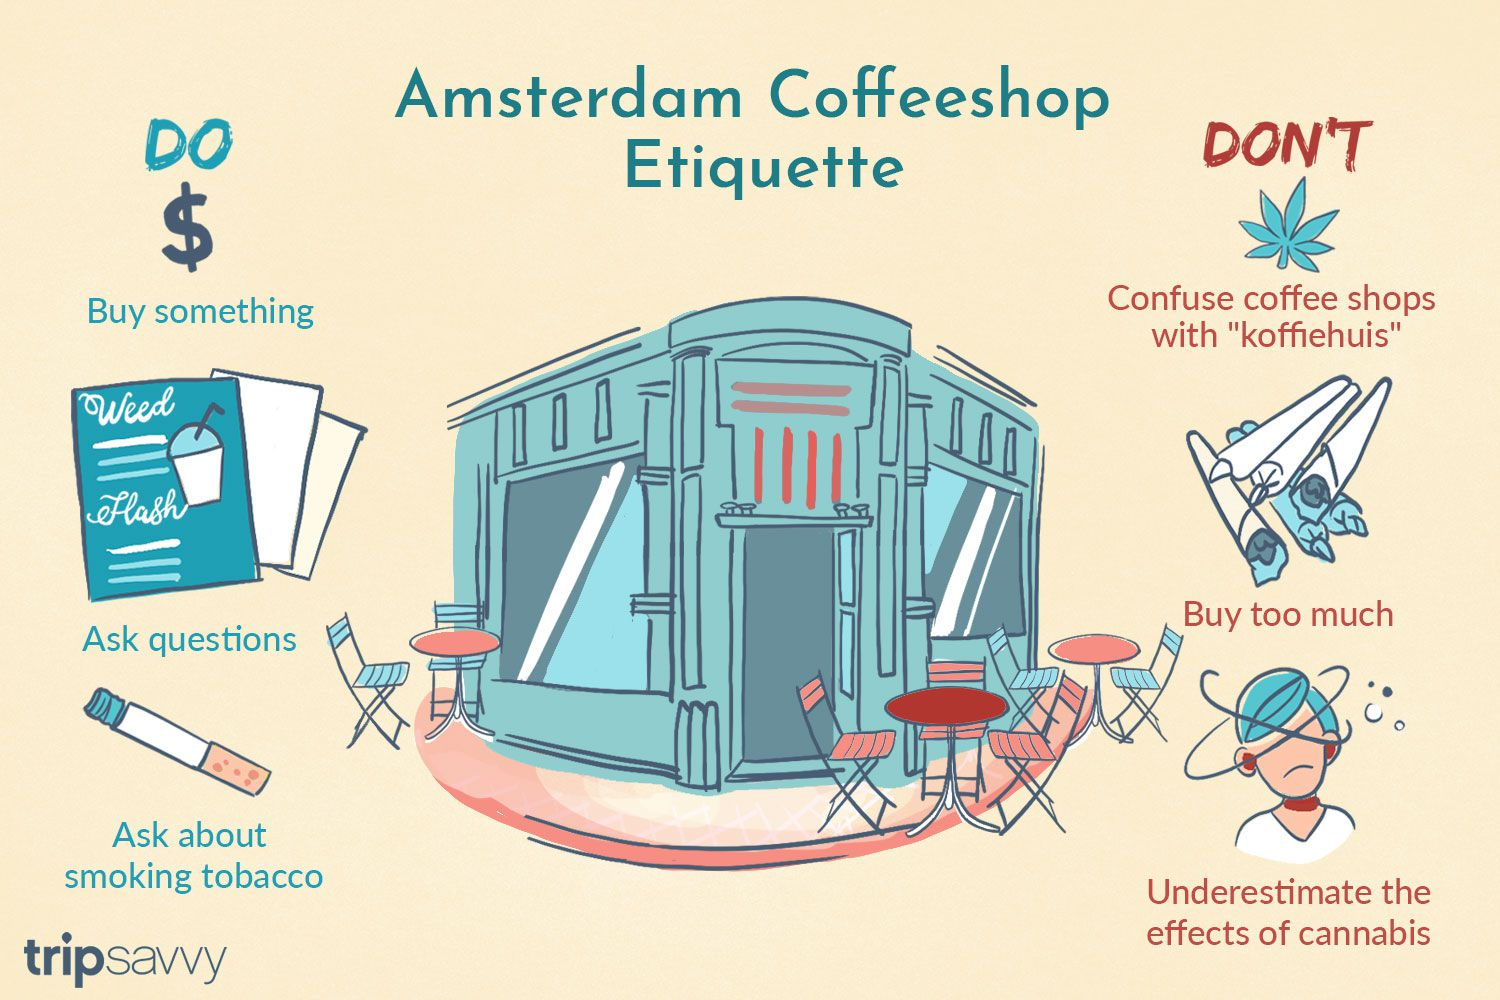 The Dos and Don'ts of Amsterdam Coffeeshops